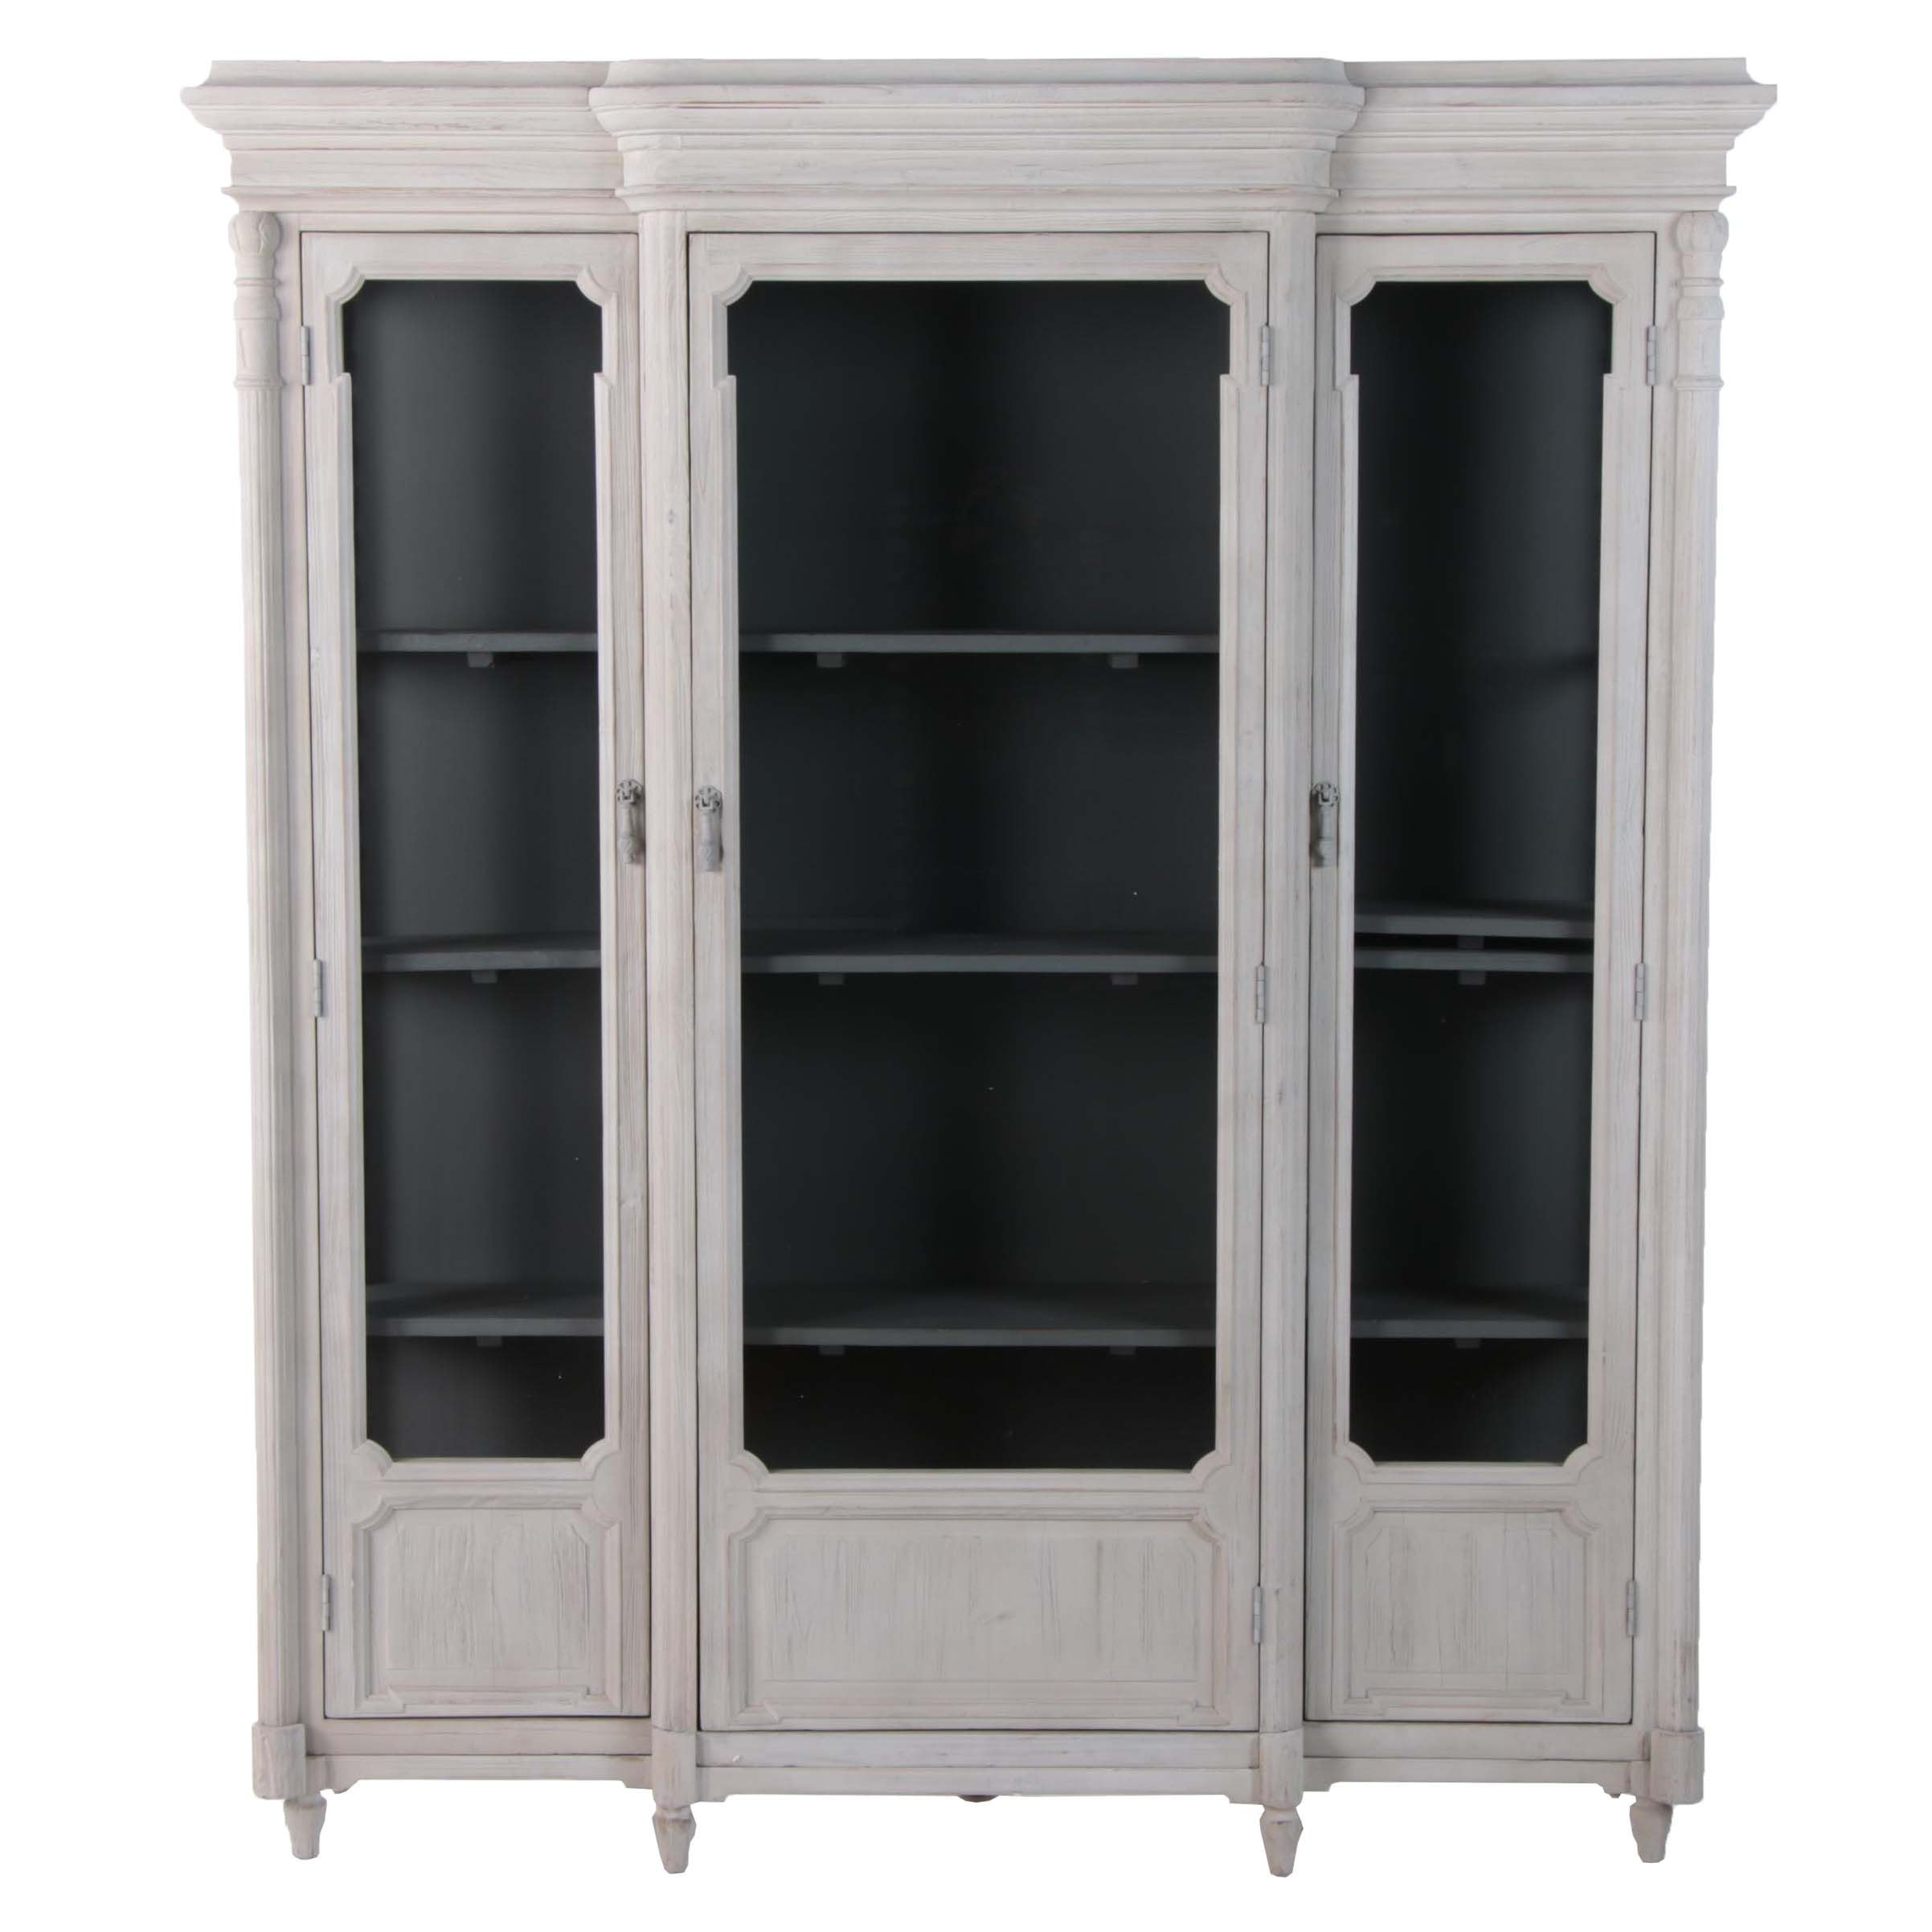 "French Provincial Style ""Chantilly"" Painted Breakfront Display Cabinet, 21st C."